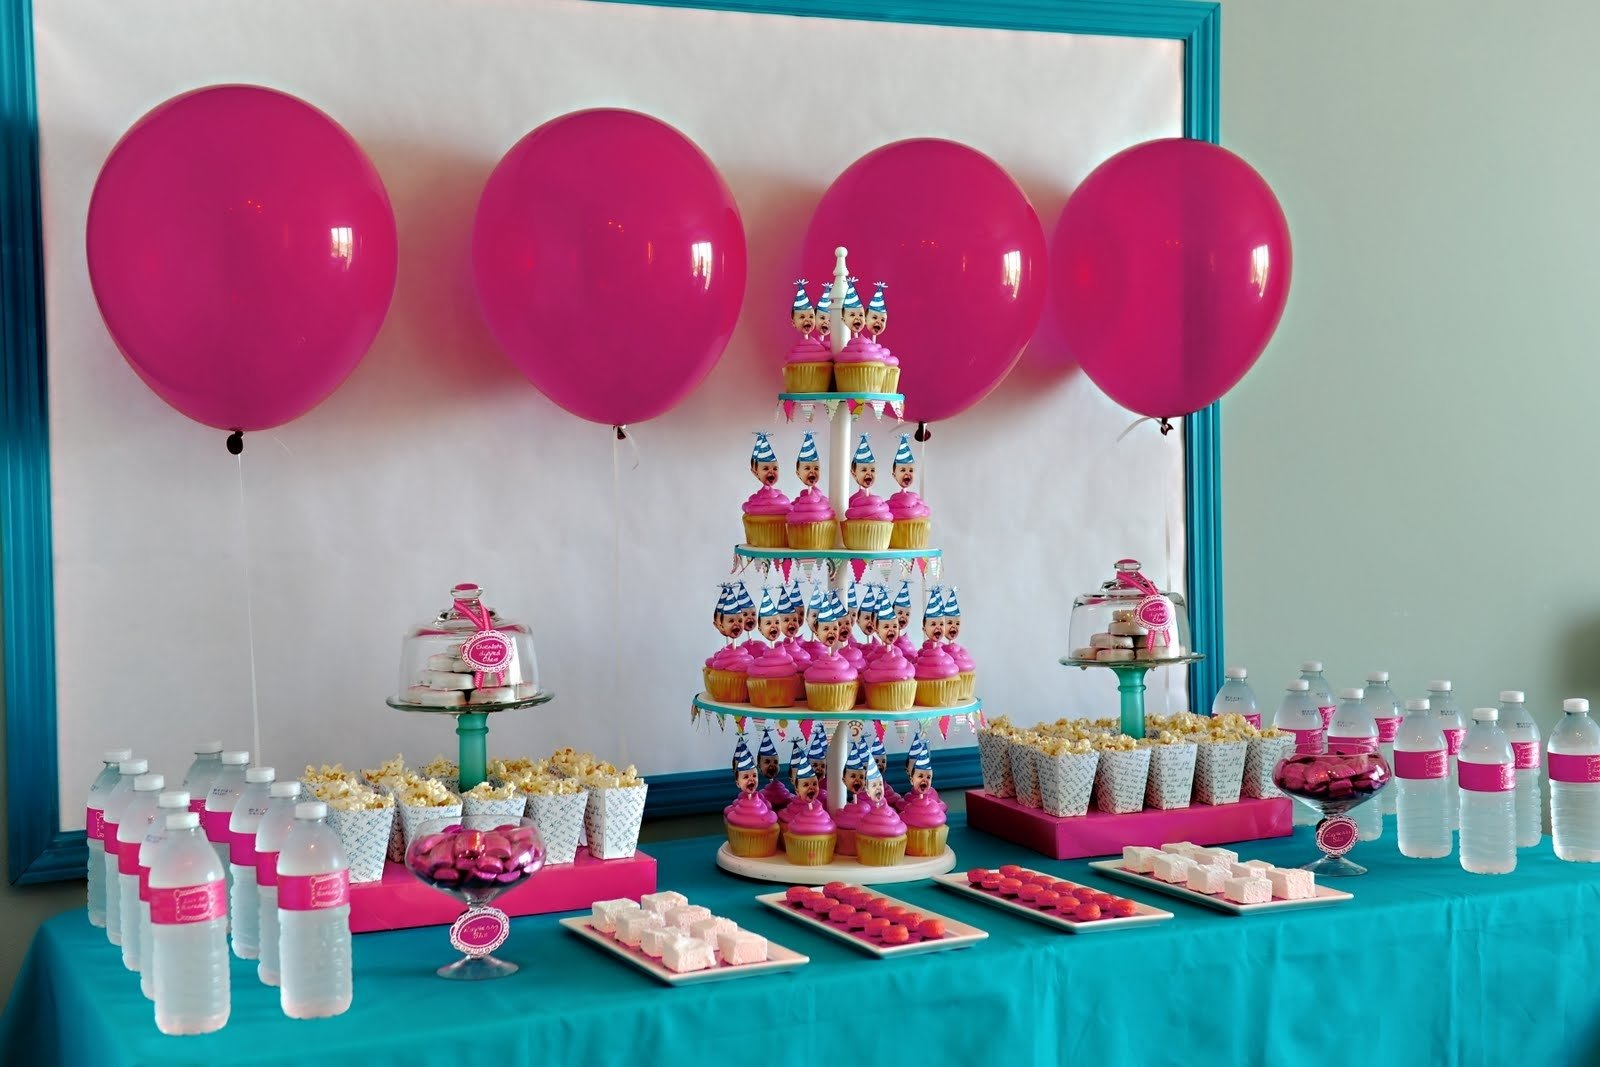 10 year old birthday party ideas - teenage birthday party ideas